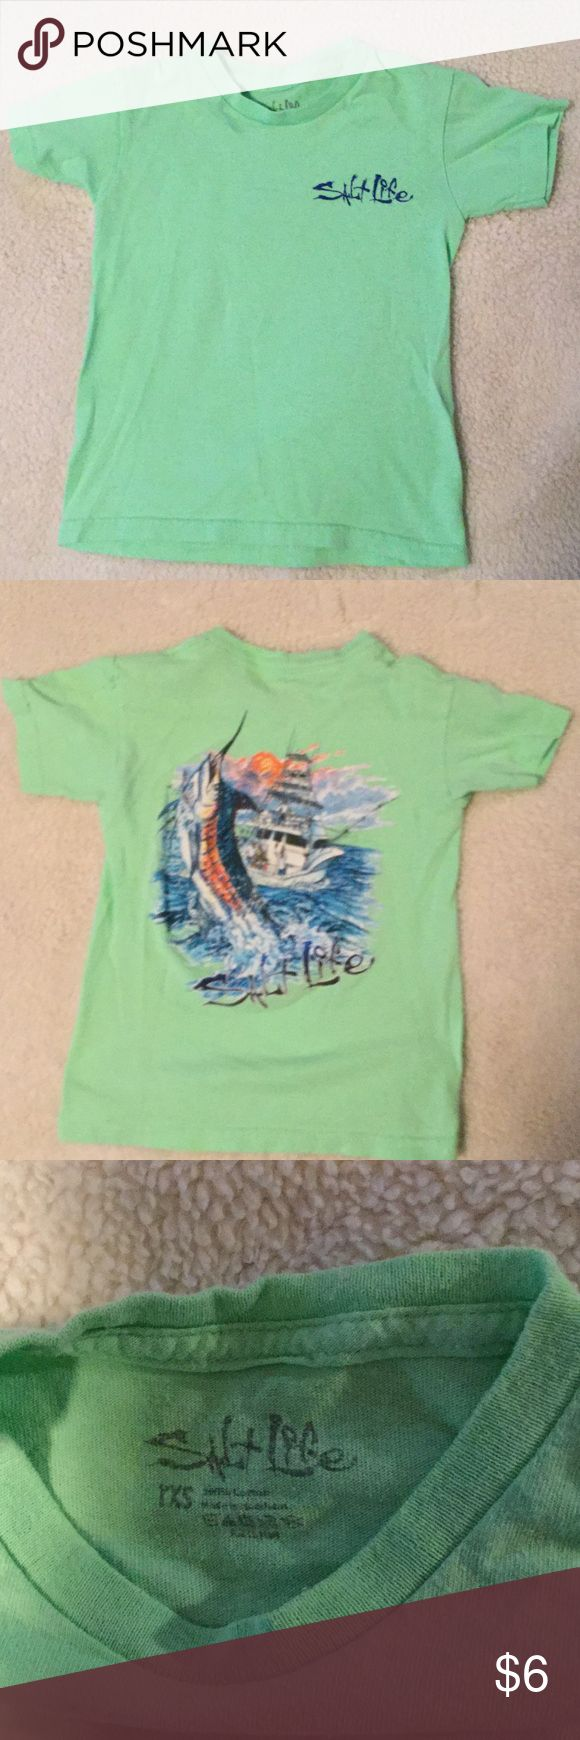 Salt Life T-Shirt Salt life t-shirt only worn a handful of times at most, but shows wear mainly from washing... Smoke FREE home Marked YXS, would say 2-3T salt life Shirts & Tops Tees - Short Sleeve